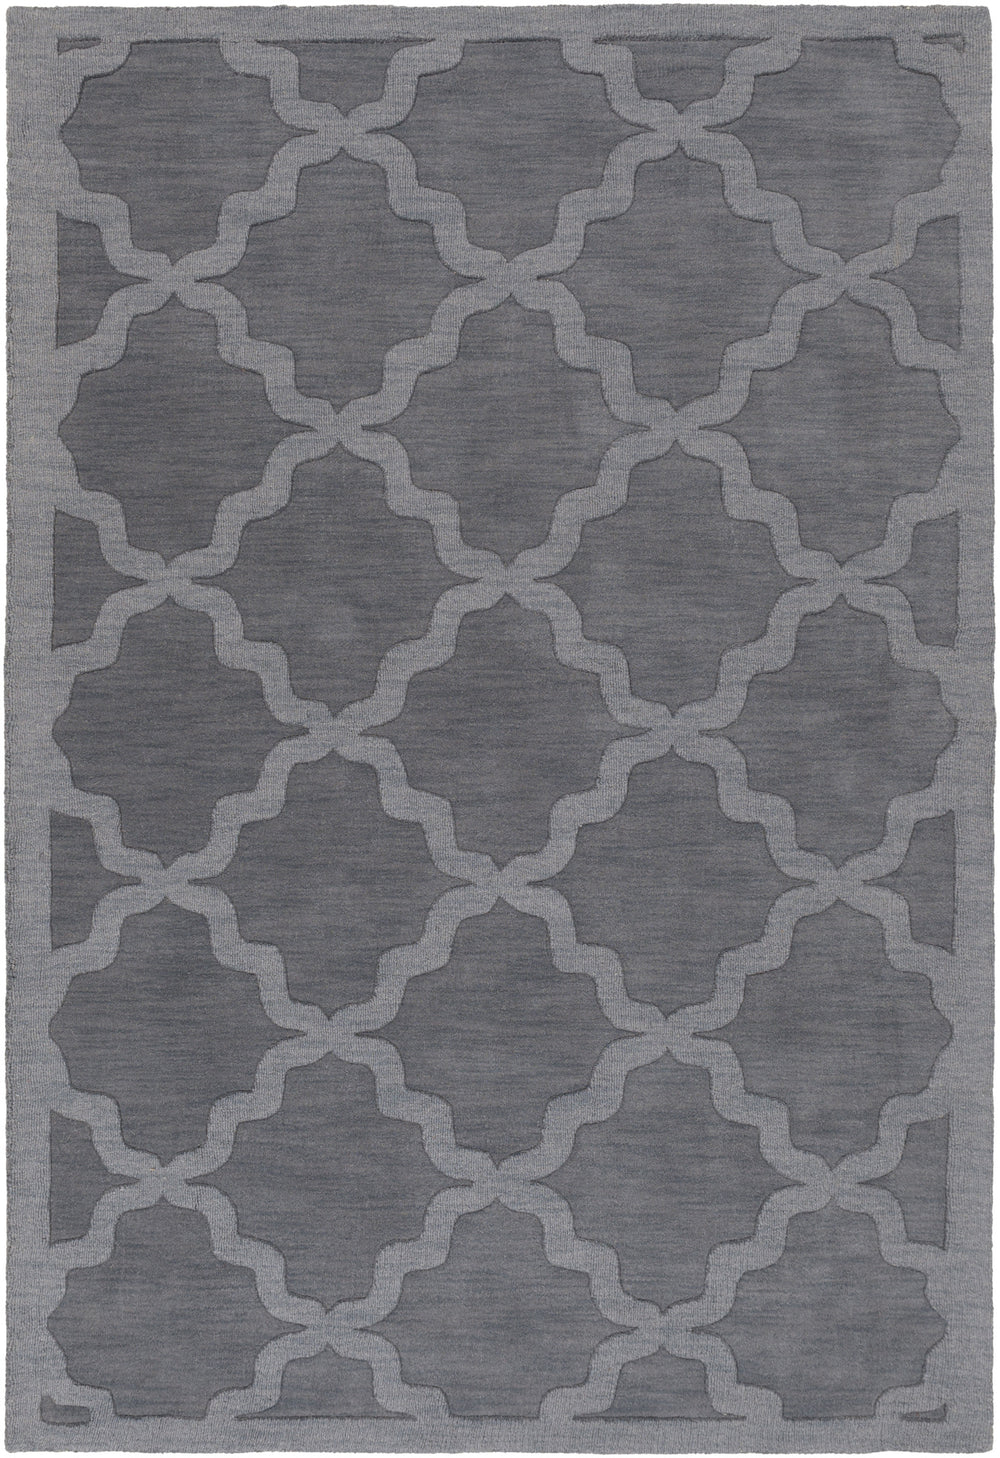 Artistic Weavers Central Park Abbey AWHP4023 Area Rug